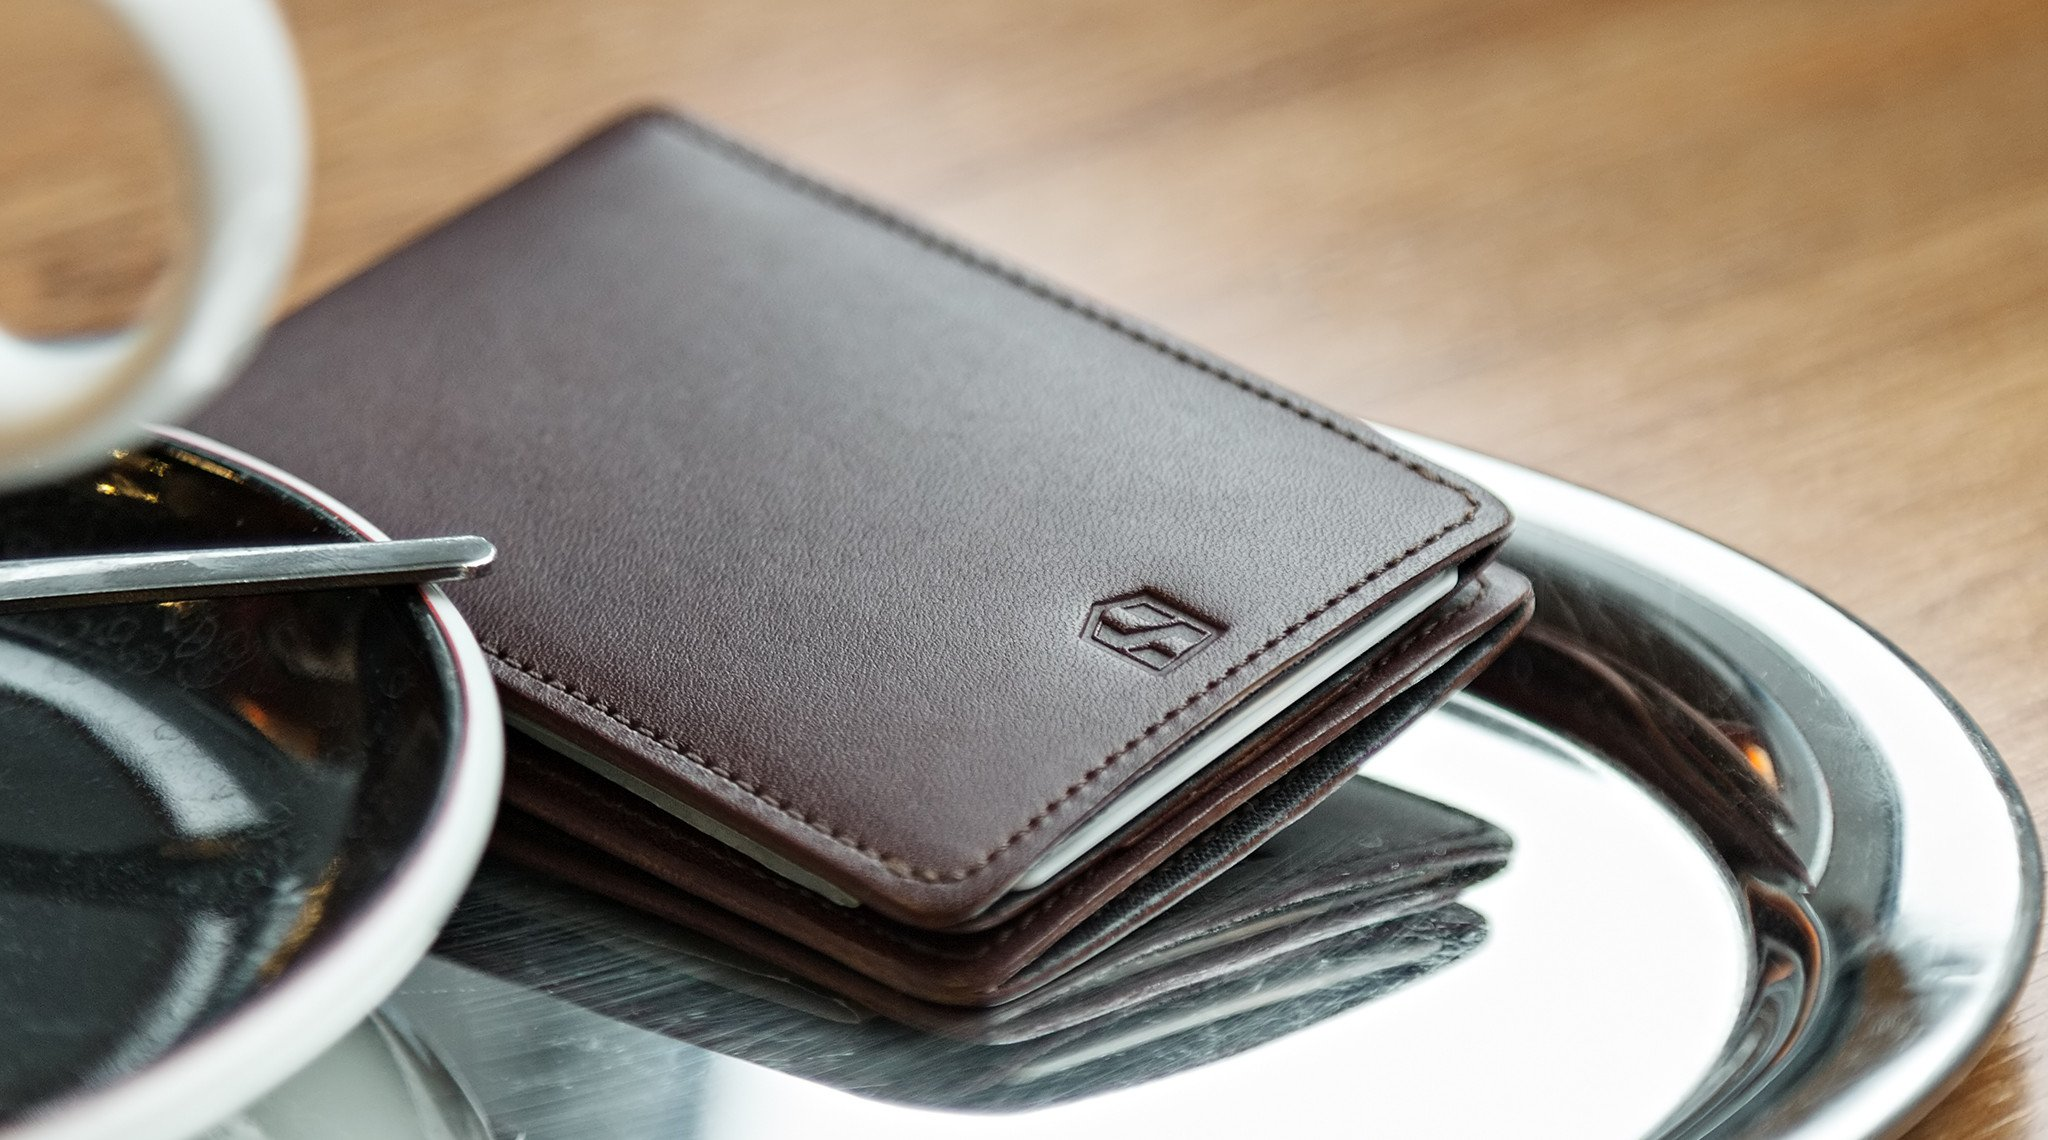 Huskk Minimalist Leather Wallet